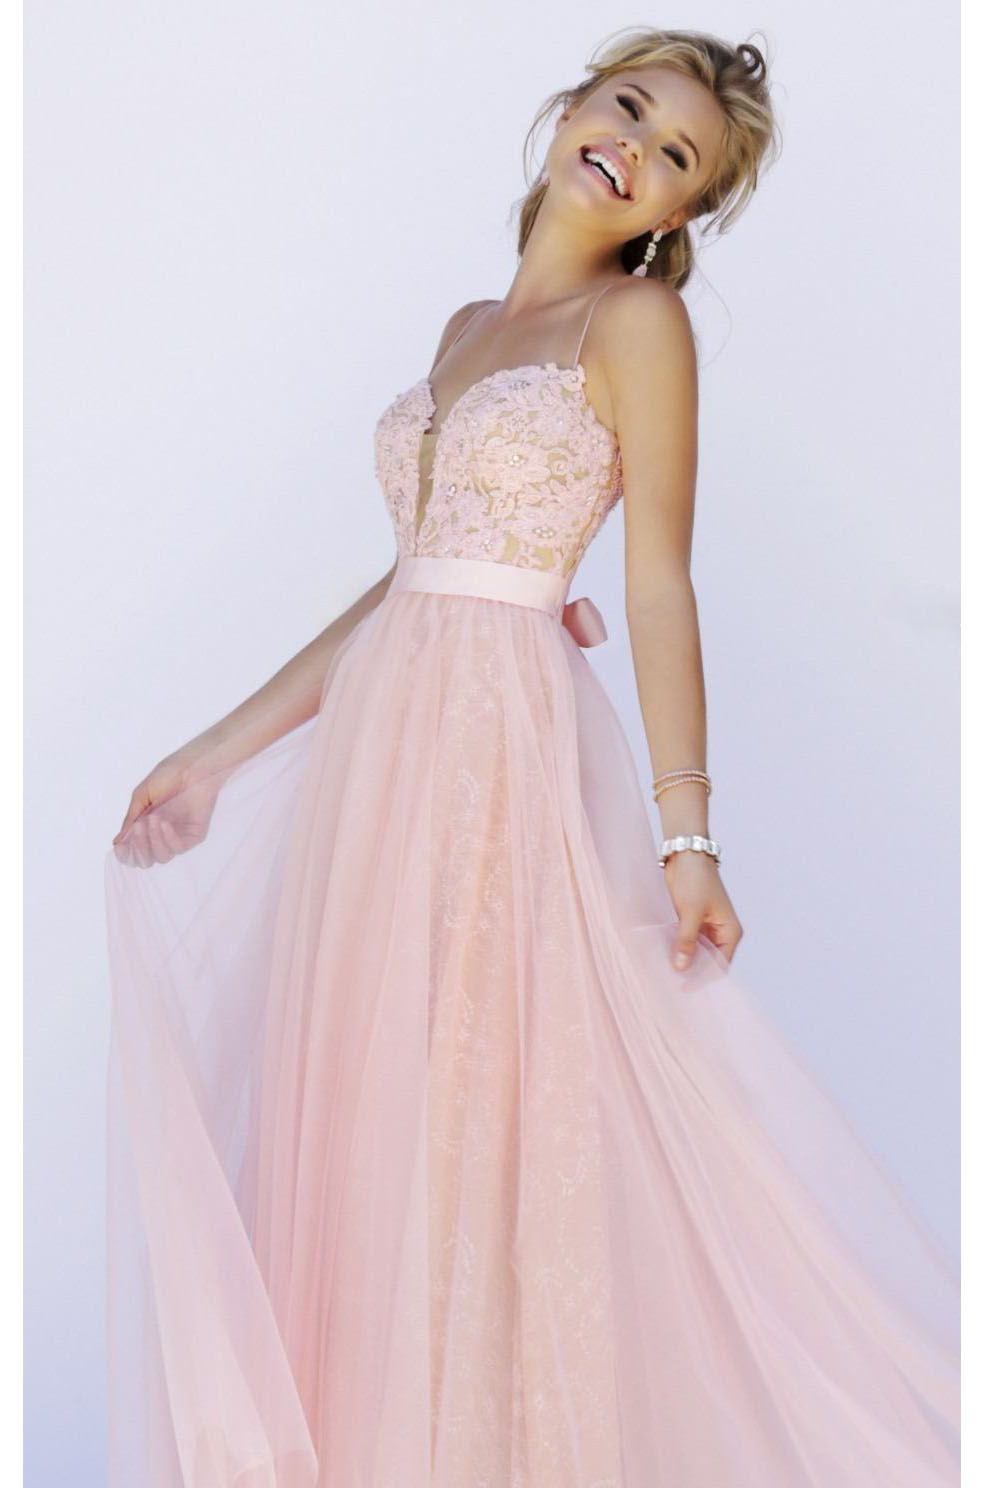 Beaded lace gown shoes matching outfitsdresses accessories